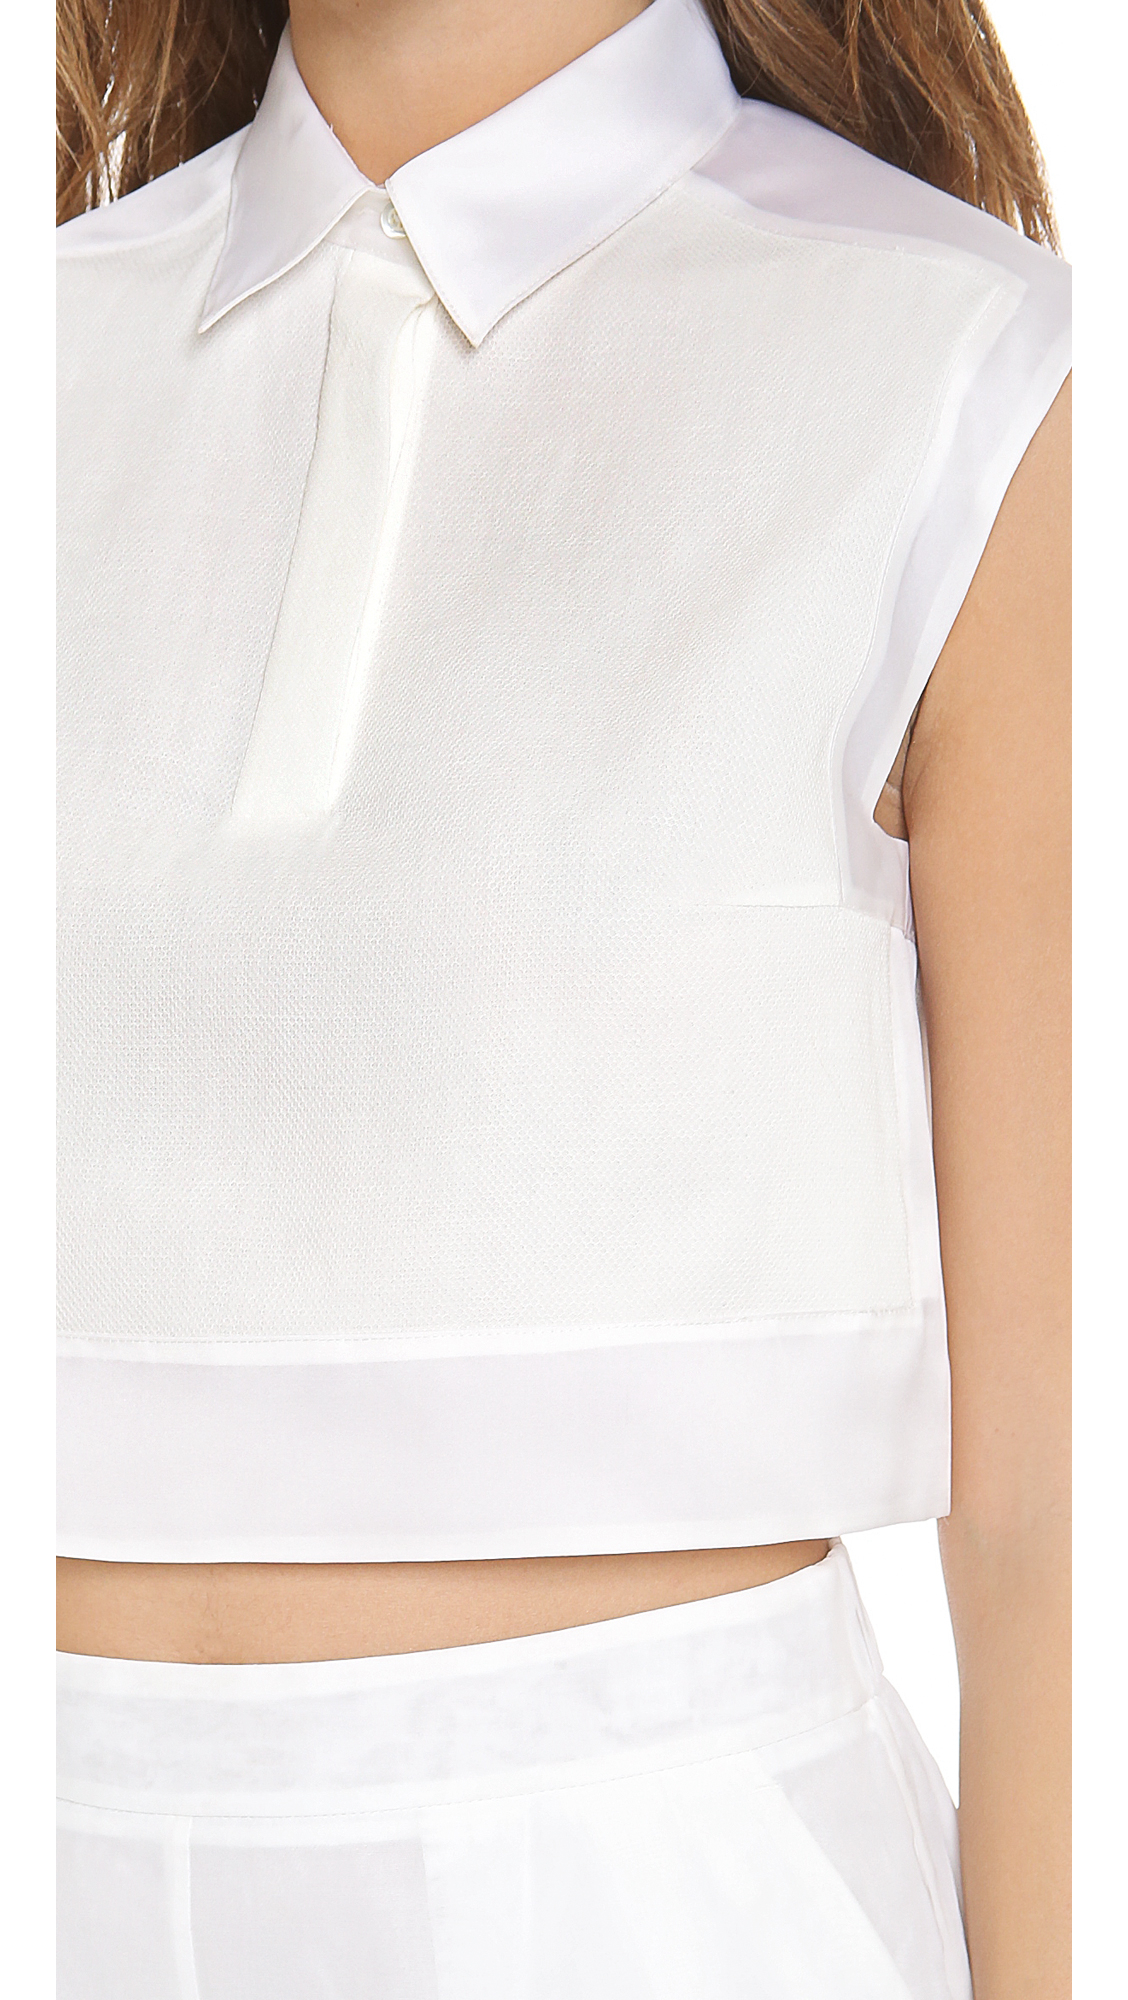 Lyst - 3.1 phillip lim Cropped Collared Tank Top in White